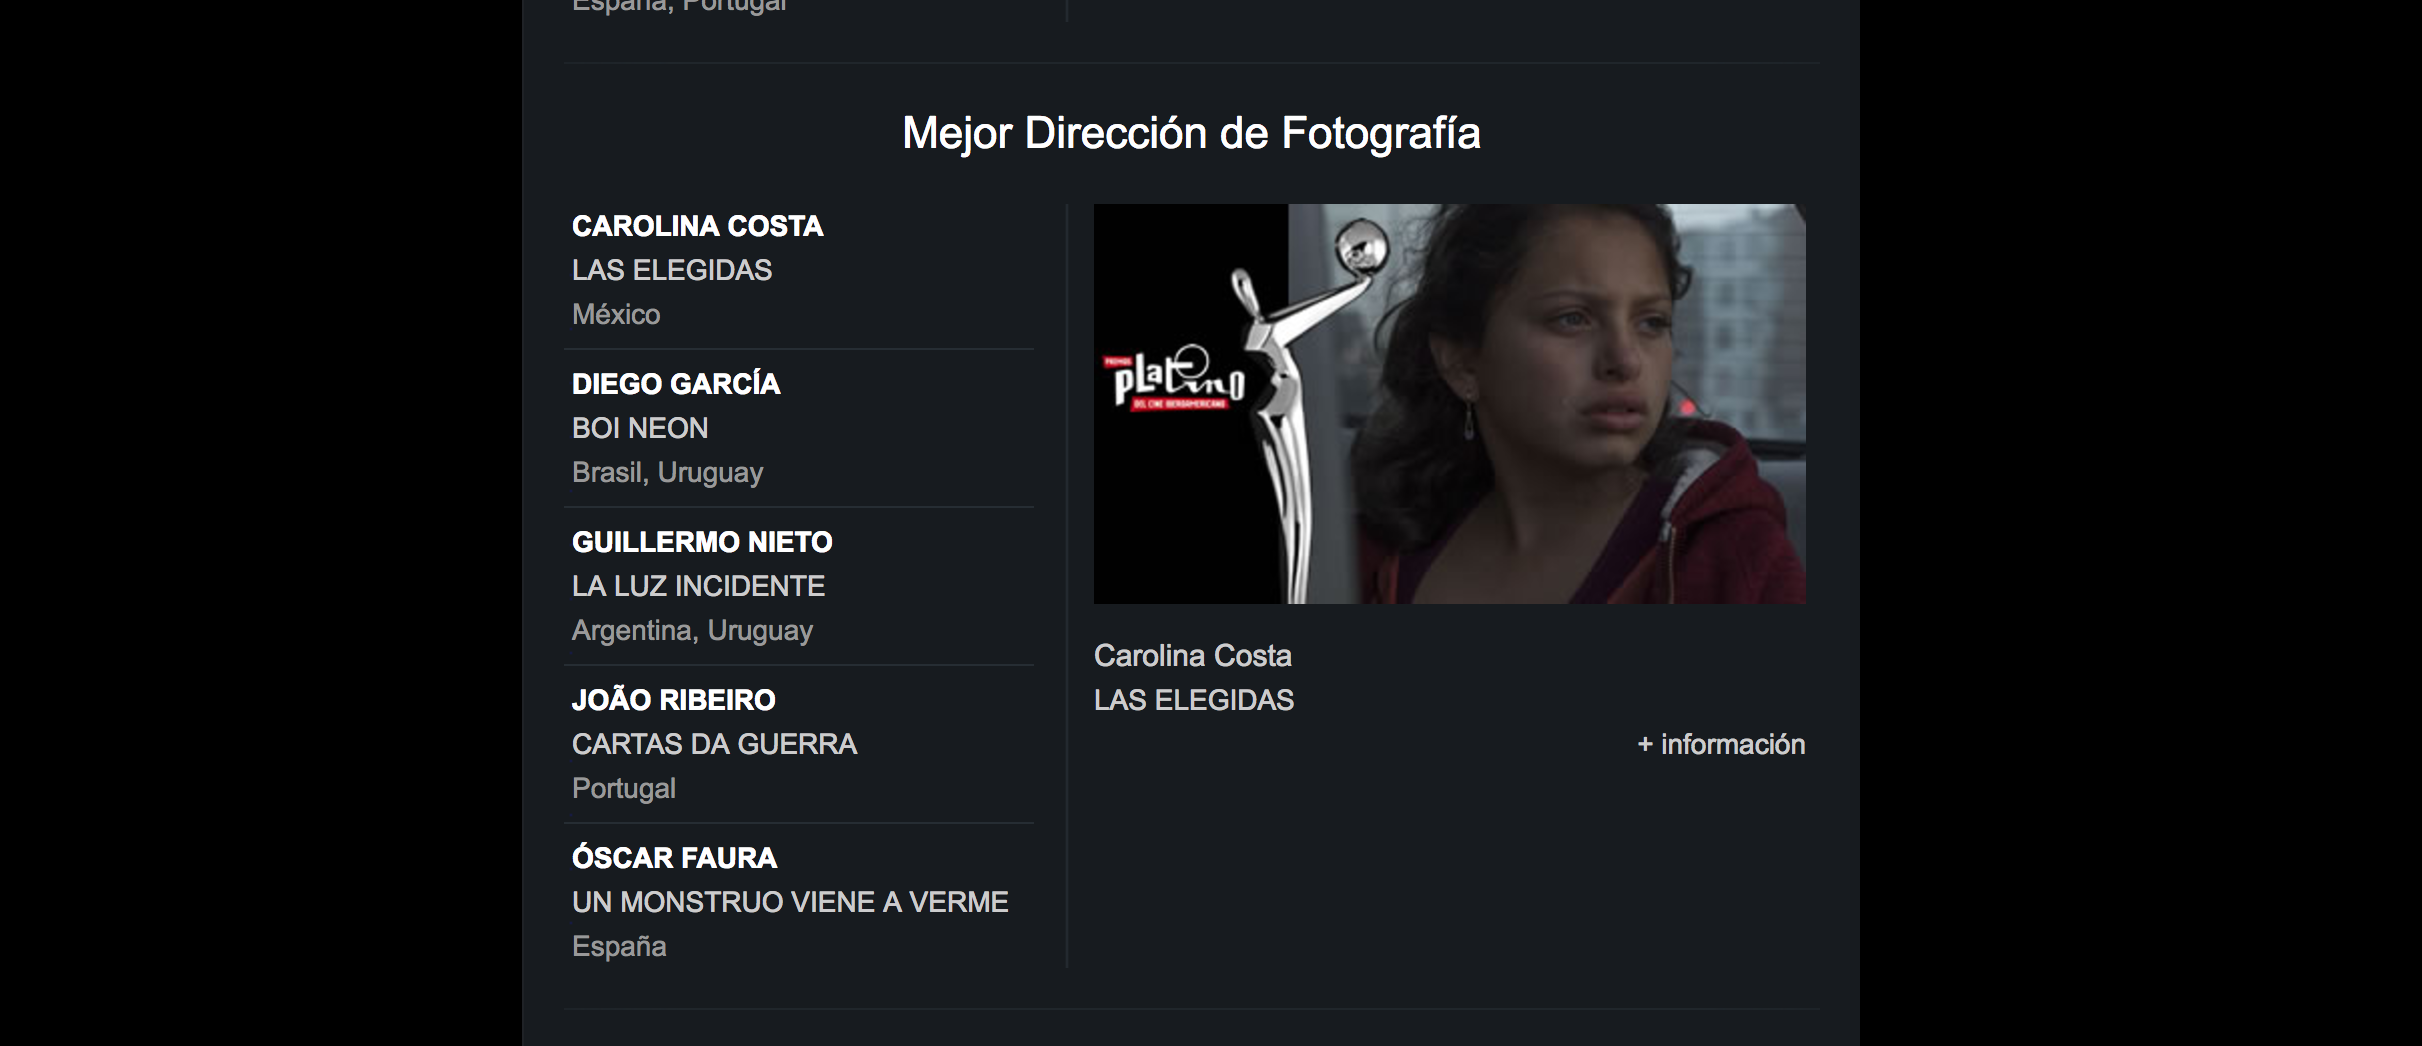 Click on image for link to the website for PREMIOS PLATINO.